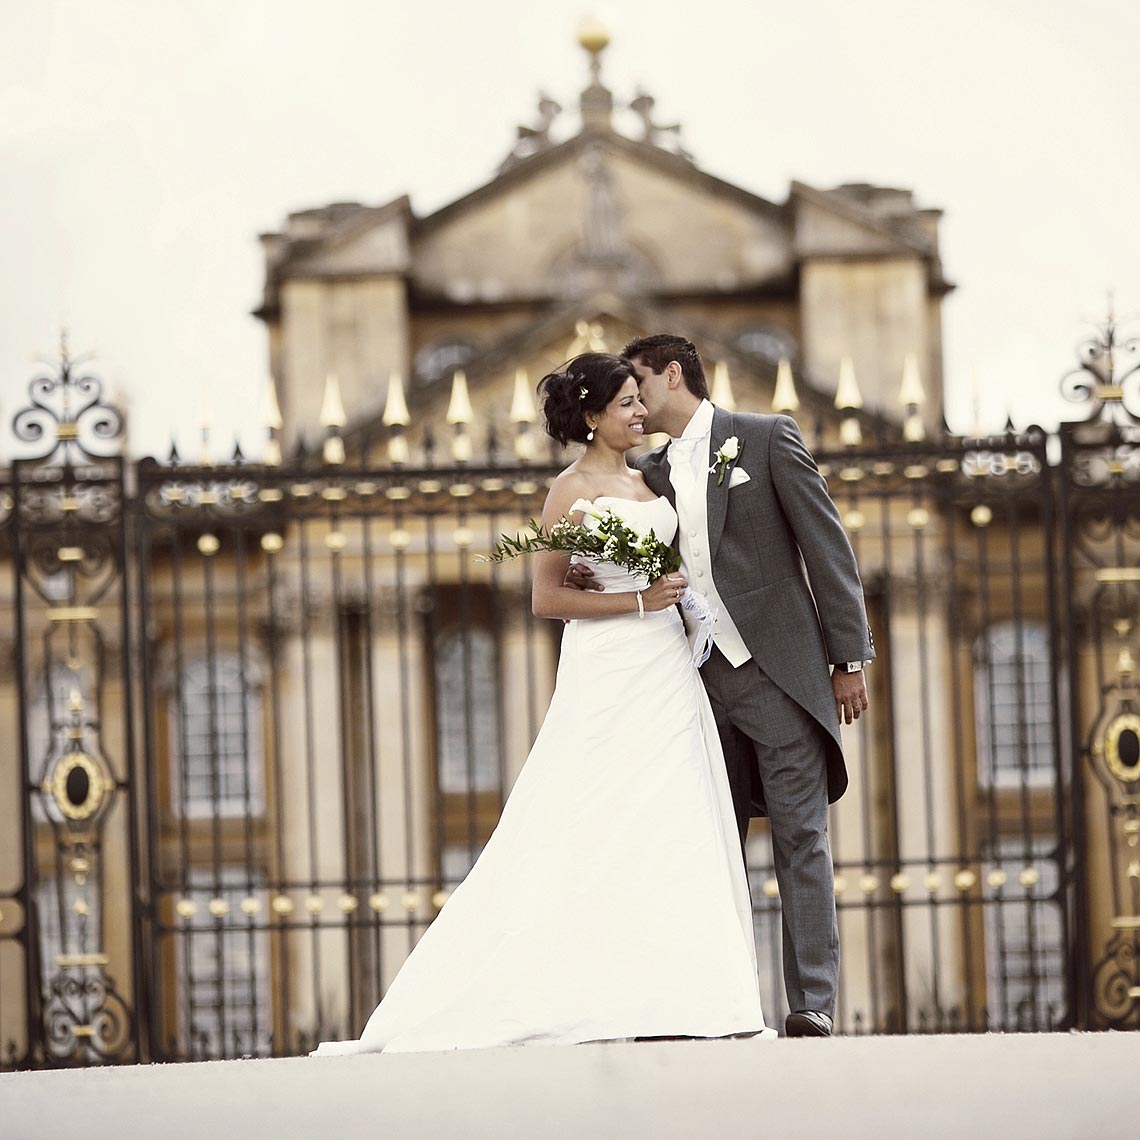 Indian-wedding-at-Blenheim-palace.jpg